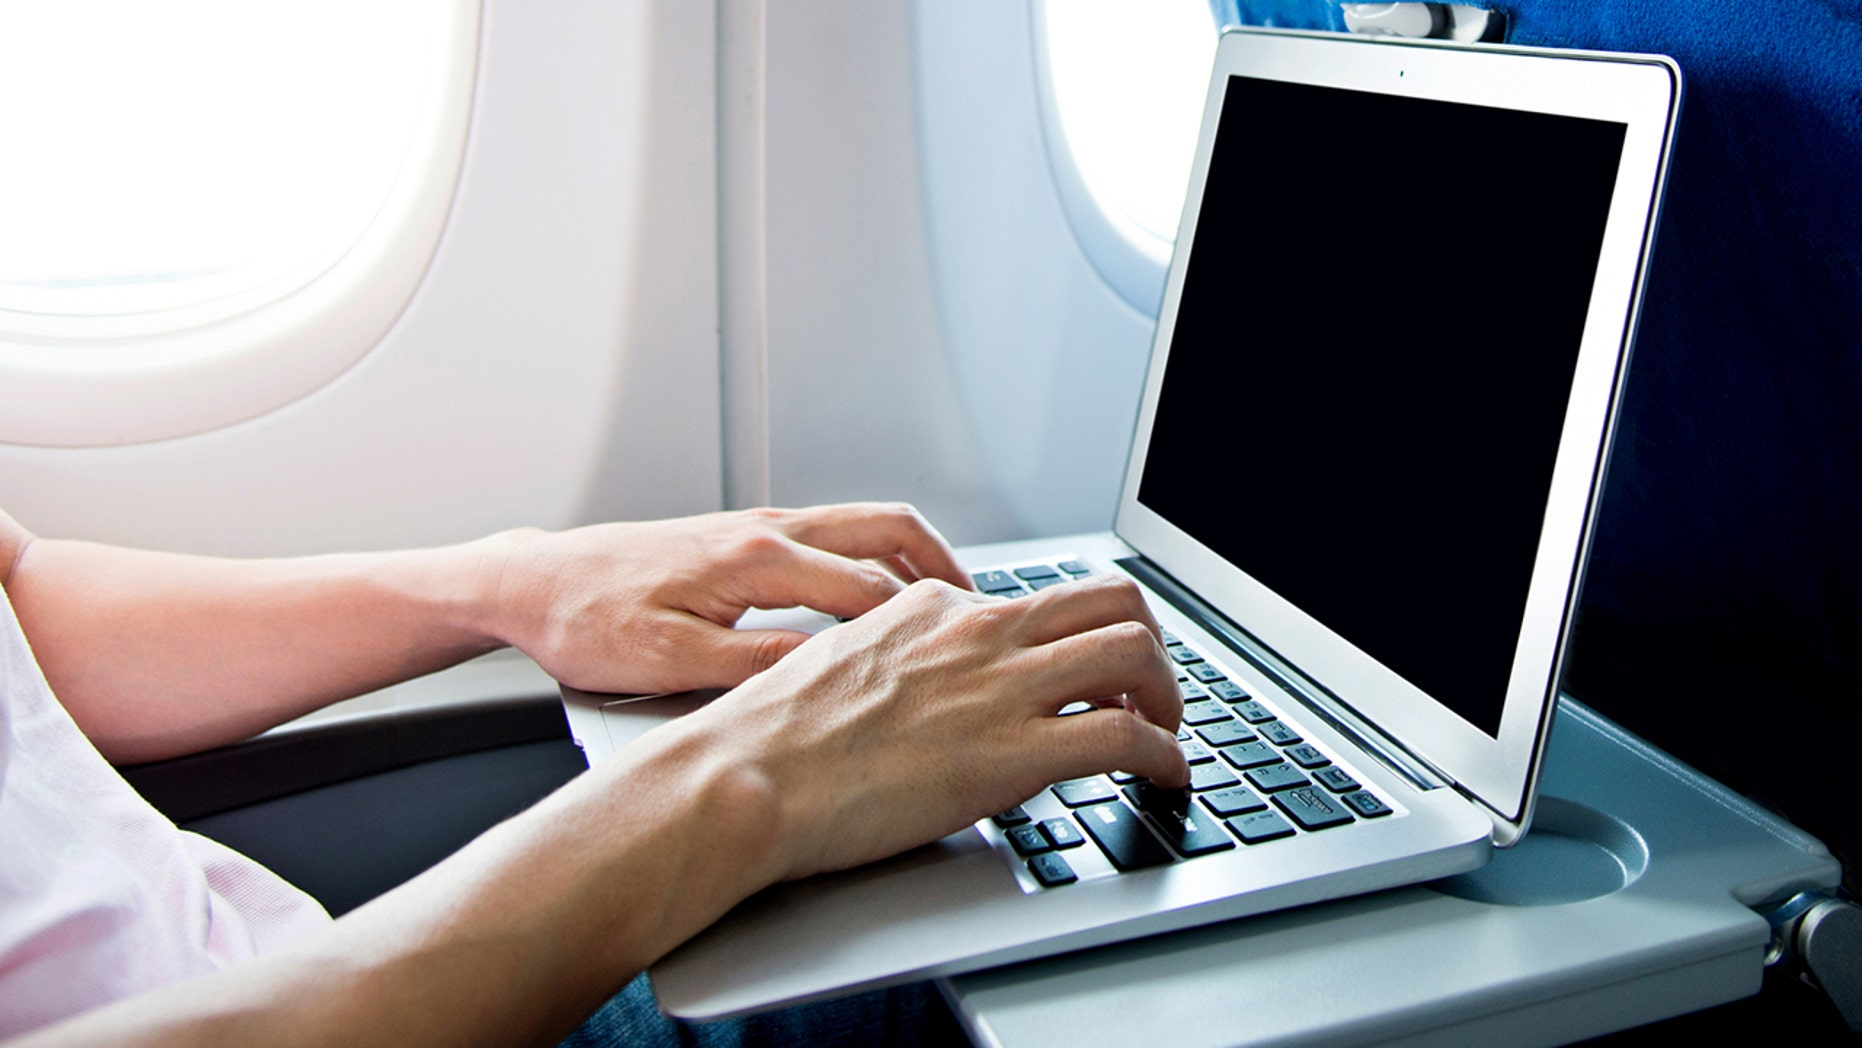 Man using laptop computer on airplane.